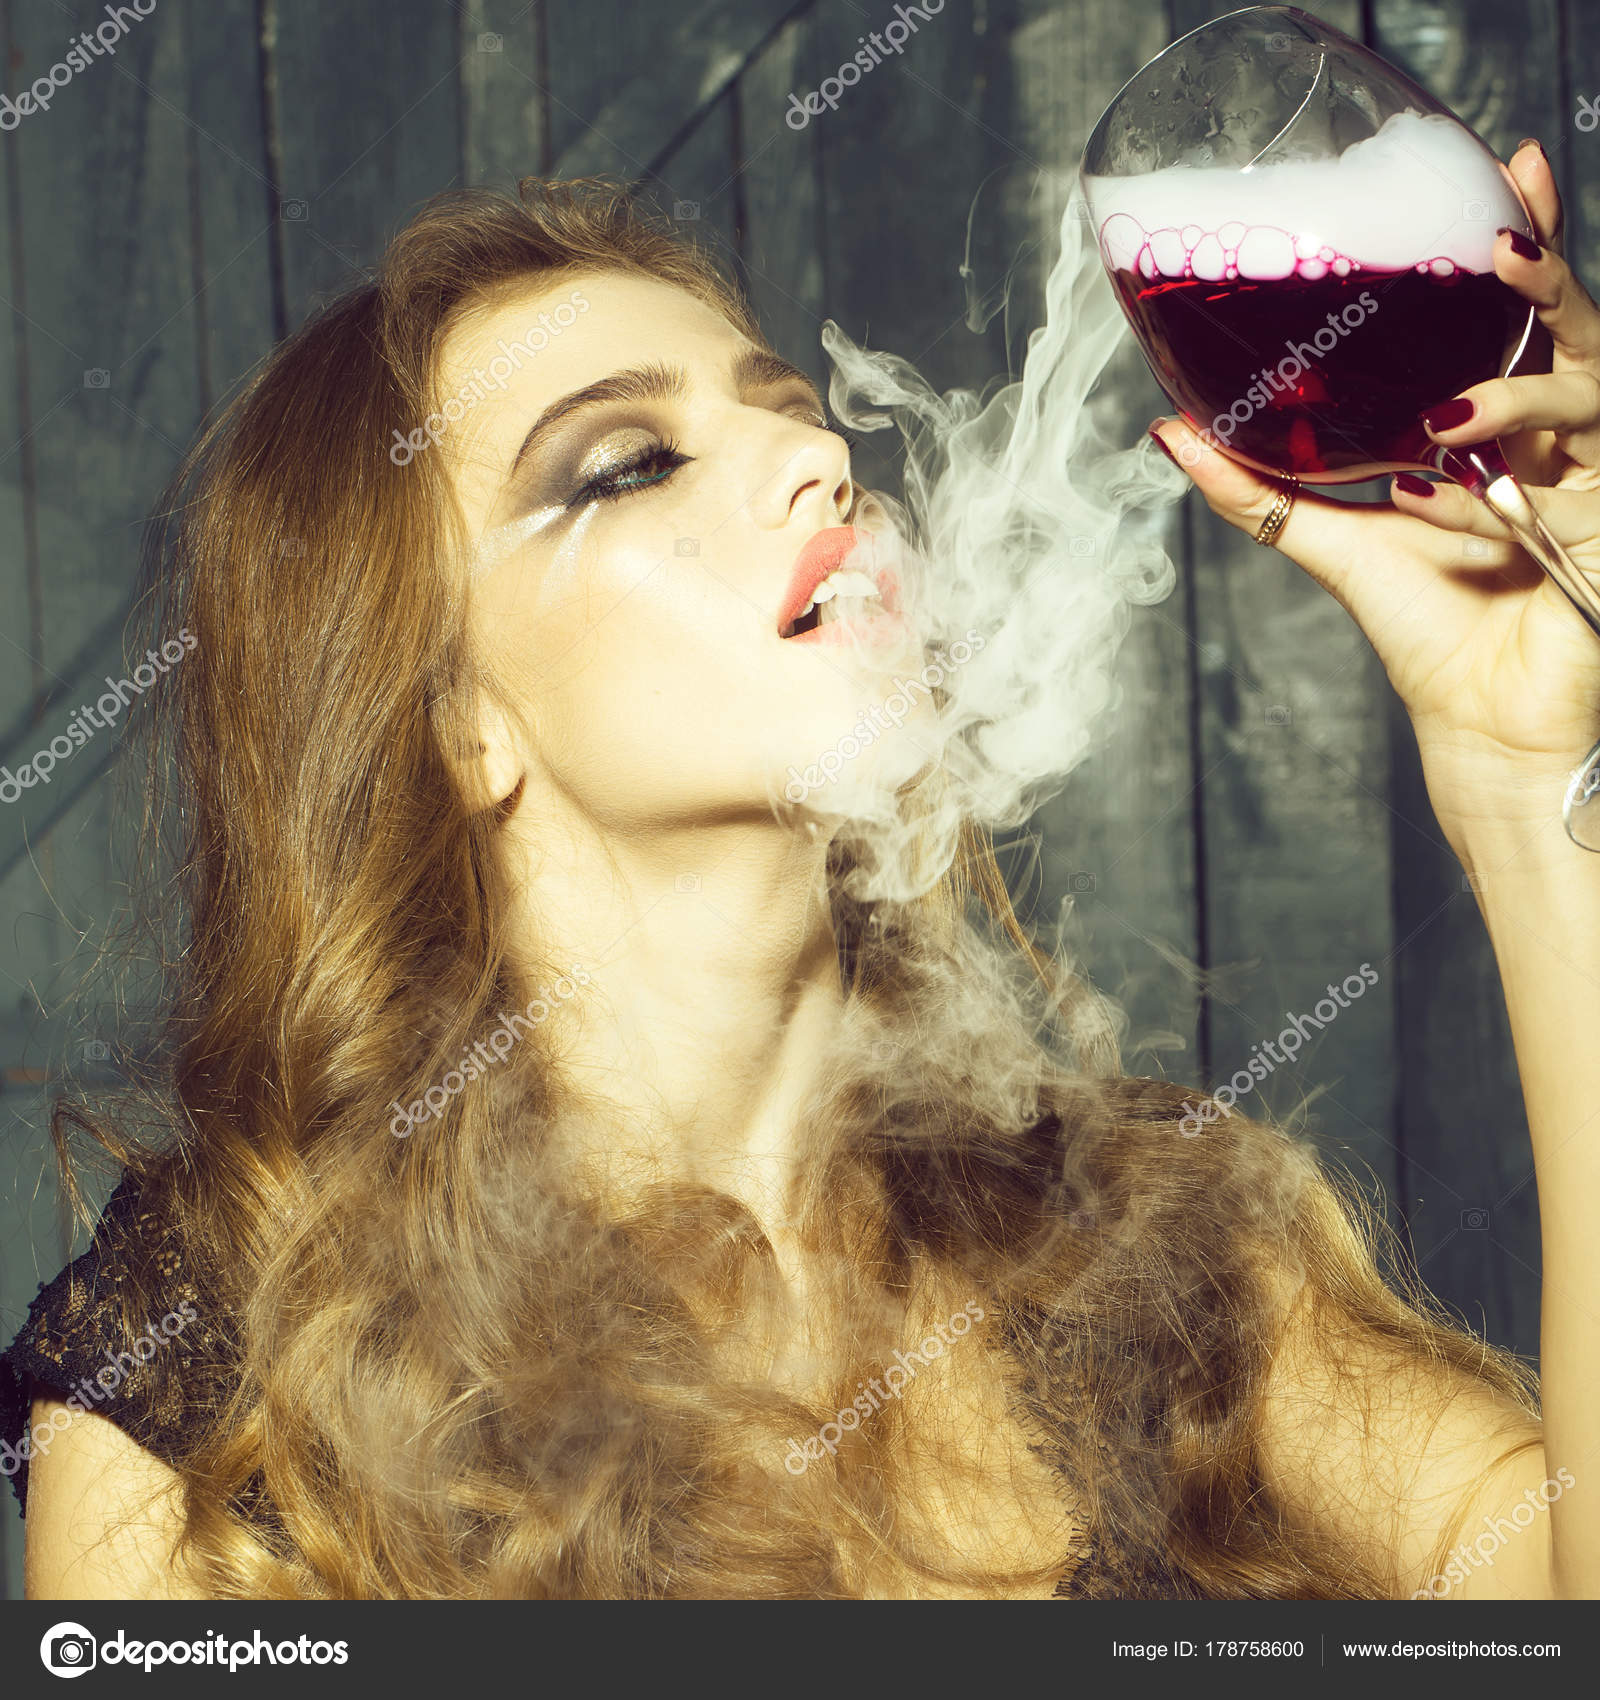 Are absolutely the girl with the wine glass